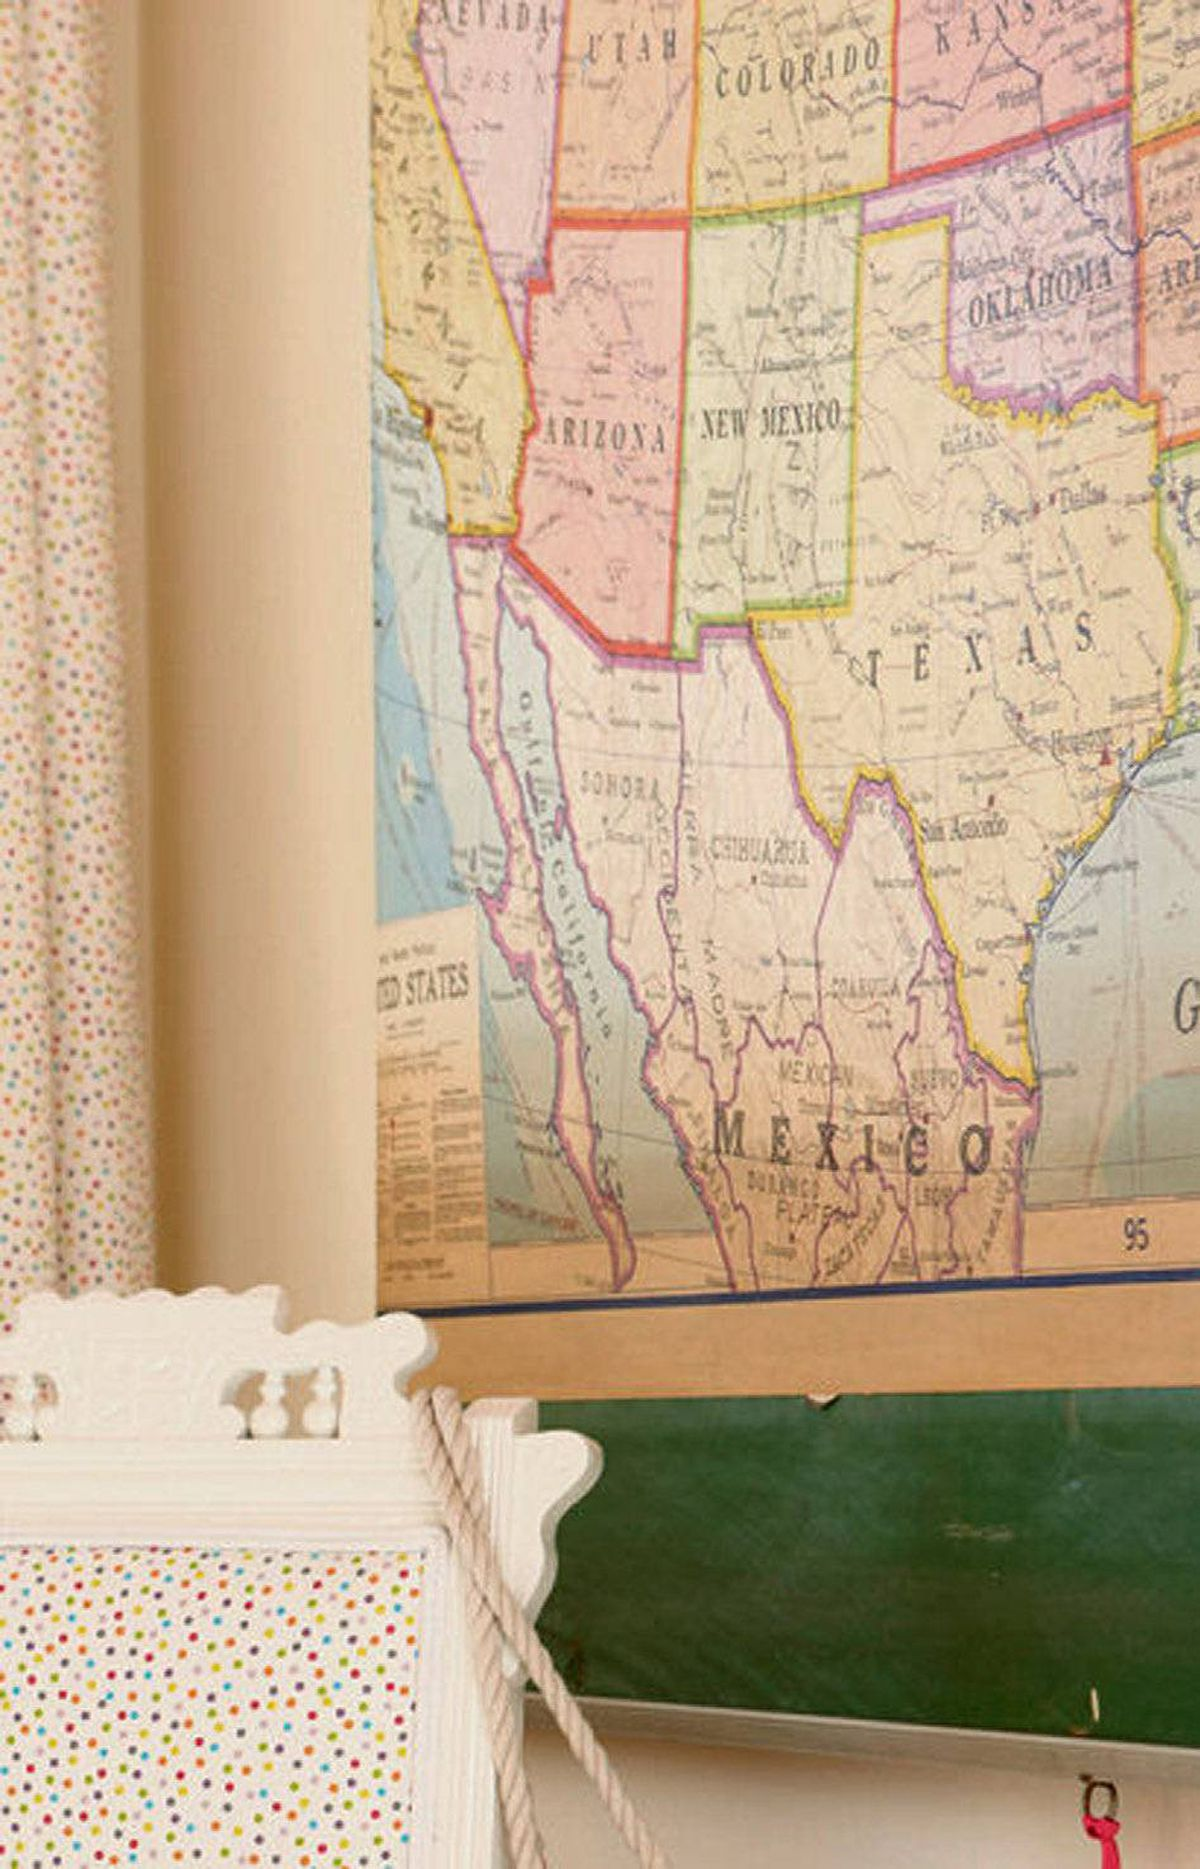 SCOUT FOR UNEXPECTED ART Looking for an inexpensive way to add colour, pattern and interest to your walls? Try an overscale vintage pull-down map, hung with its original roller mechanism intact, ties in nicely to the room's bright new colour scheme and provides a big-impact solution for less than $150.